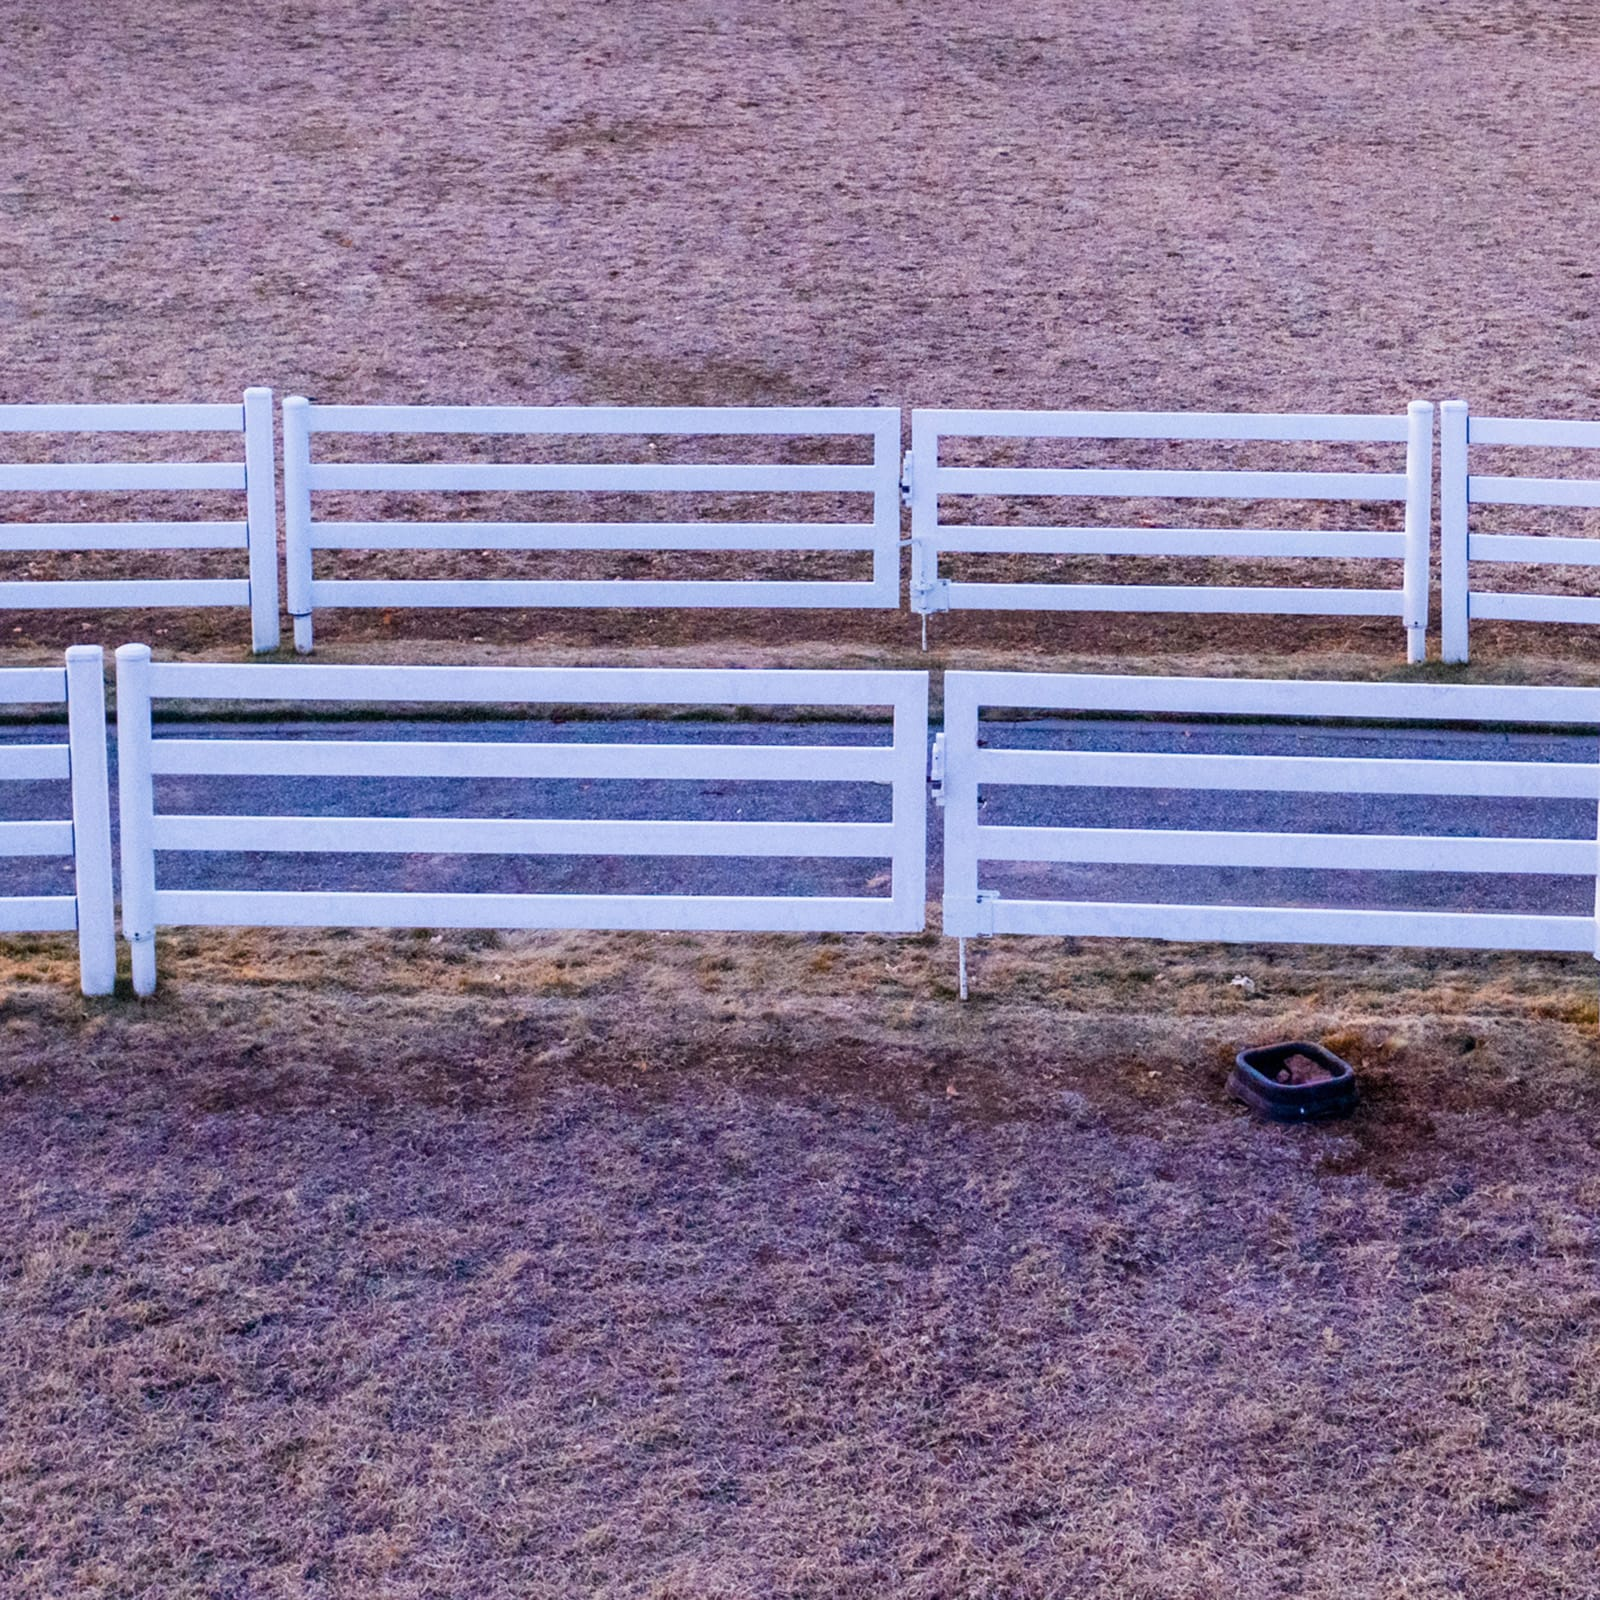 Two rows of White Buckley Fence.